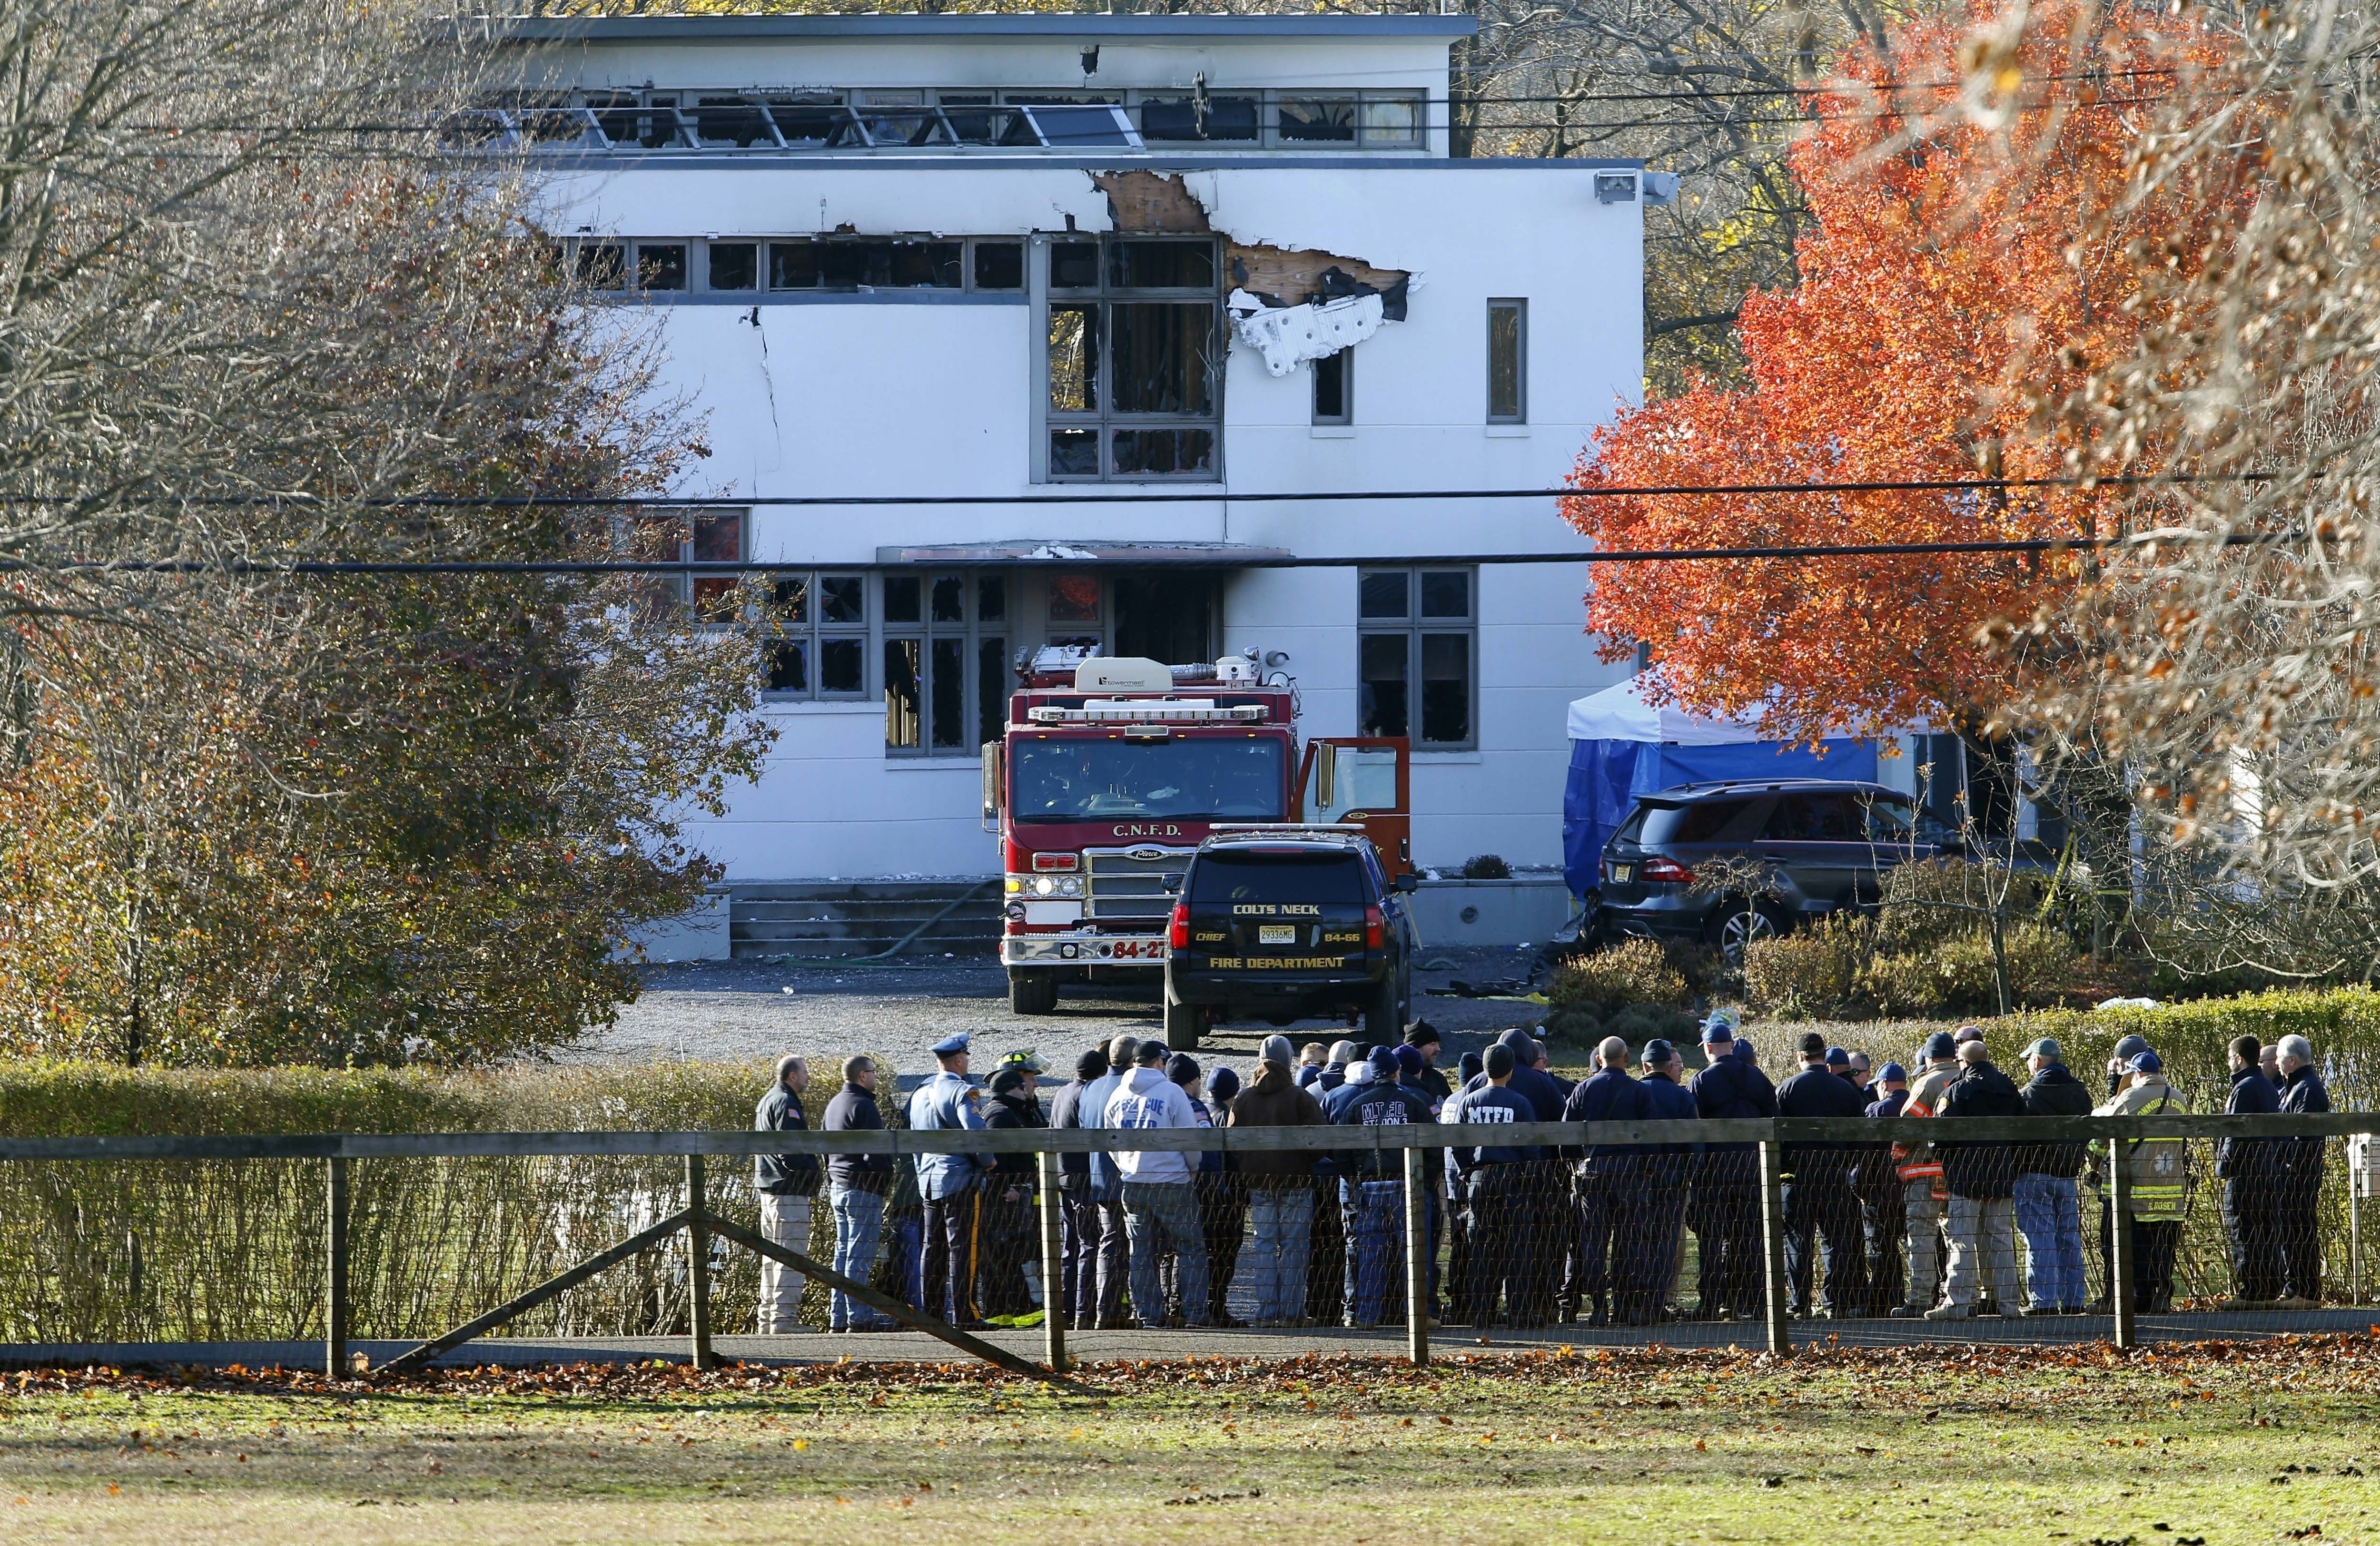 FILE - In this Nov. 21, 2018 file photo, authorities gather in Colts Neck, N.J., to investigate the aftermath of fatal fire that killed two children and two adults. The bodies of Keith Caneiro, his wife Jennifer Caneiro, their children Jesse, 11, and Sophia 8, were found at the scene: all victims of an apparent homicide. (AP Photo/Noah K. Murray, File)